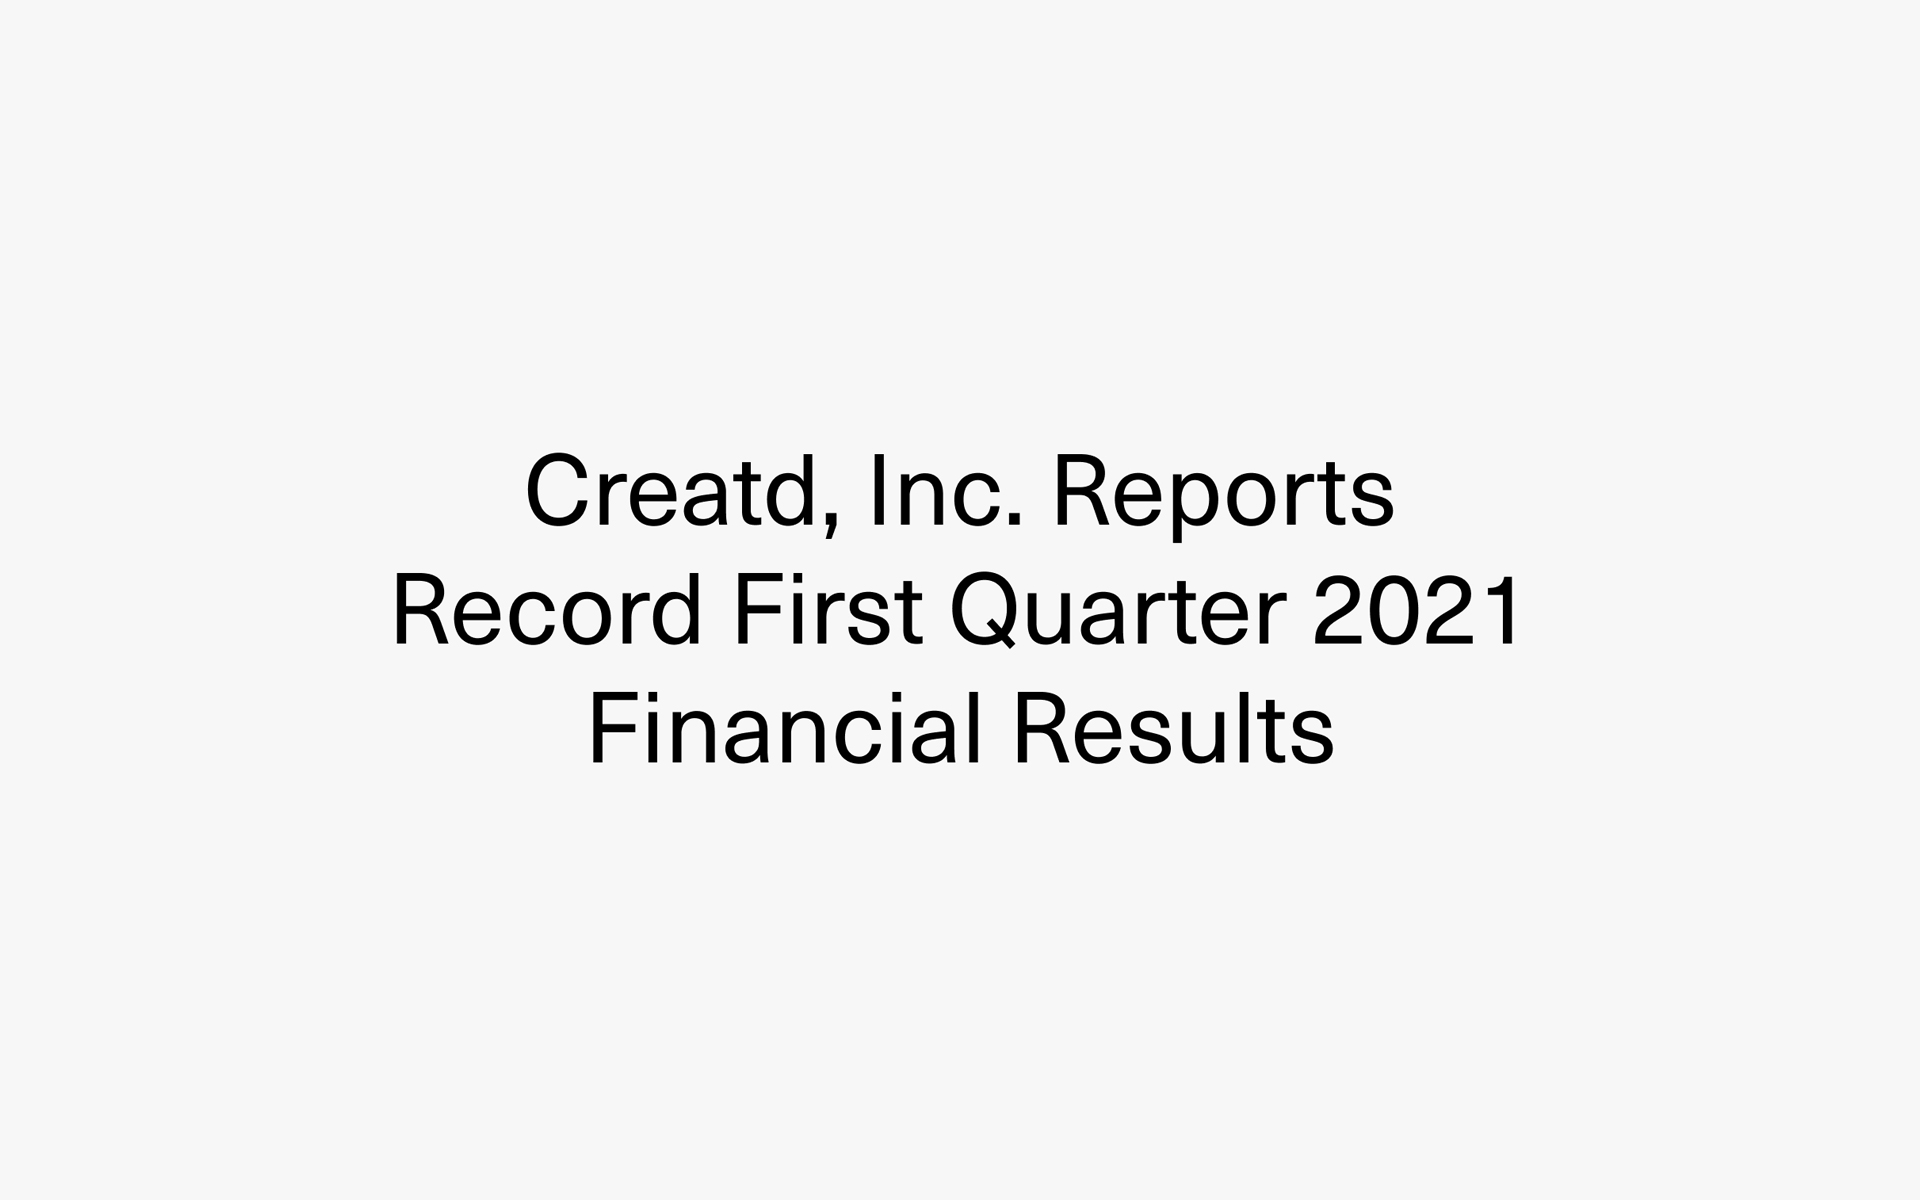 Creatd, Inc. Reports Record First Quarter 2021 Financial Results